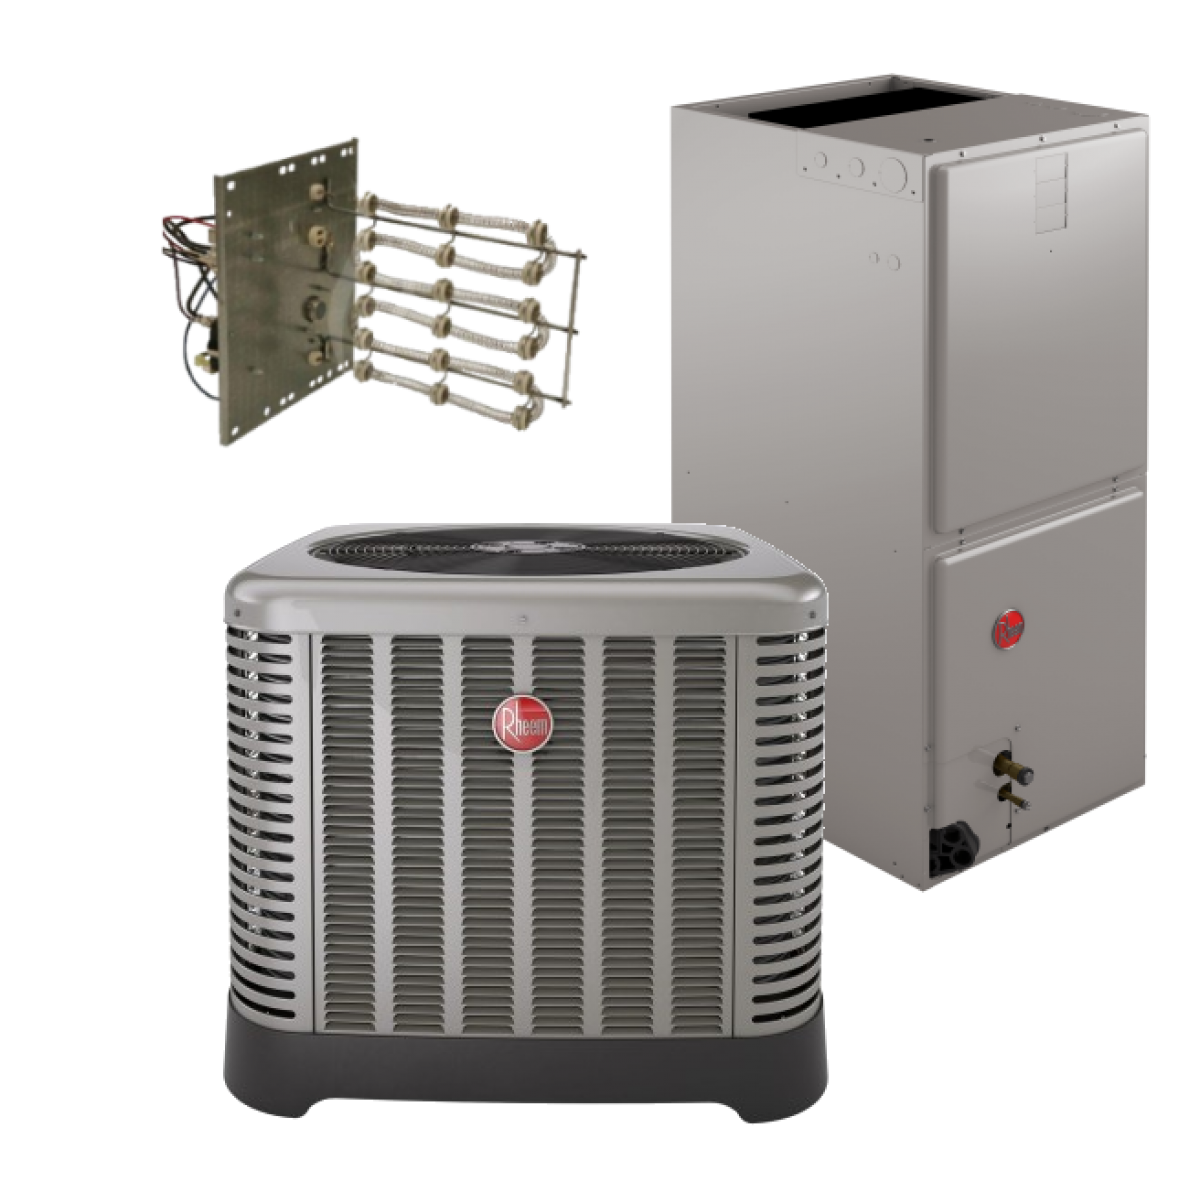 #9C2F31 Rheem 15 SEER 1.5 Ton Heat Pump System In 1.5 Ton 2.0  Recommended 1097 Aircon Heat Pump pics with 1200x1200 px on helpvideos.info - Air Conditioners, Air Coolers and more